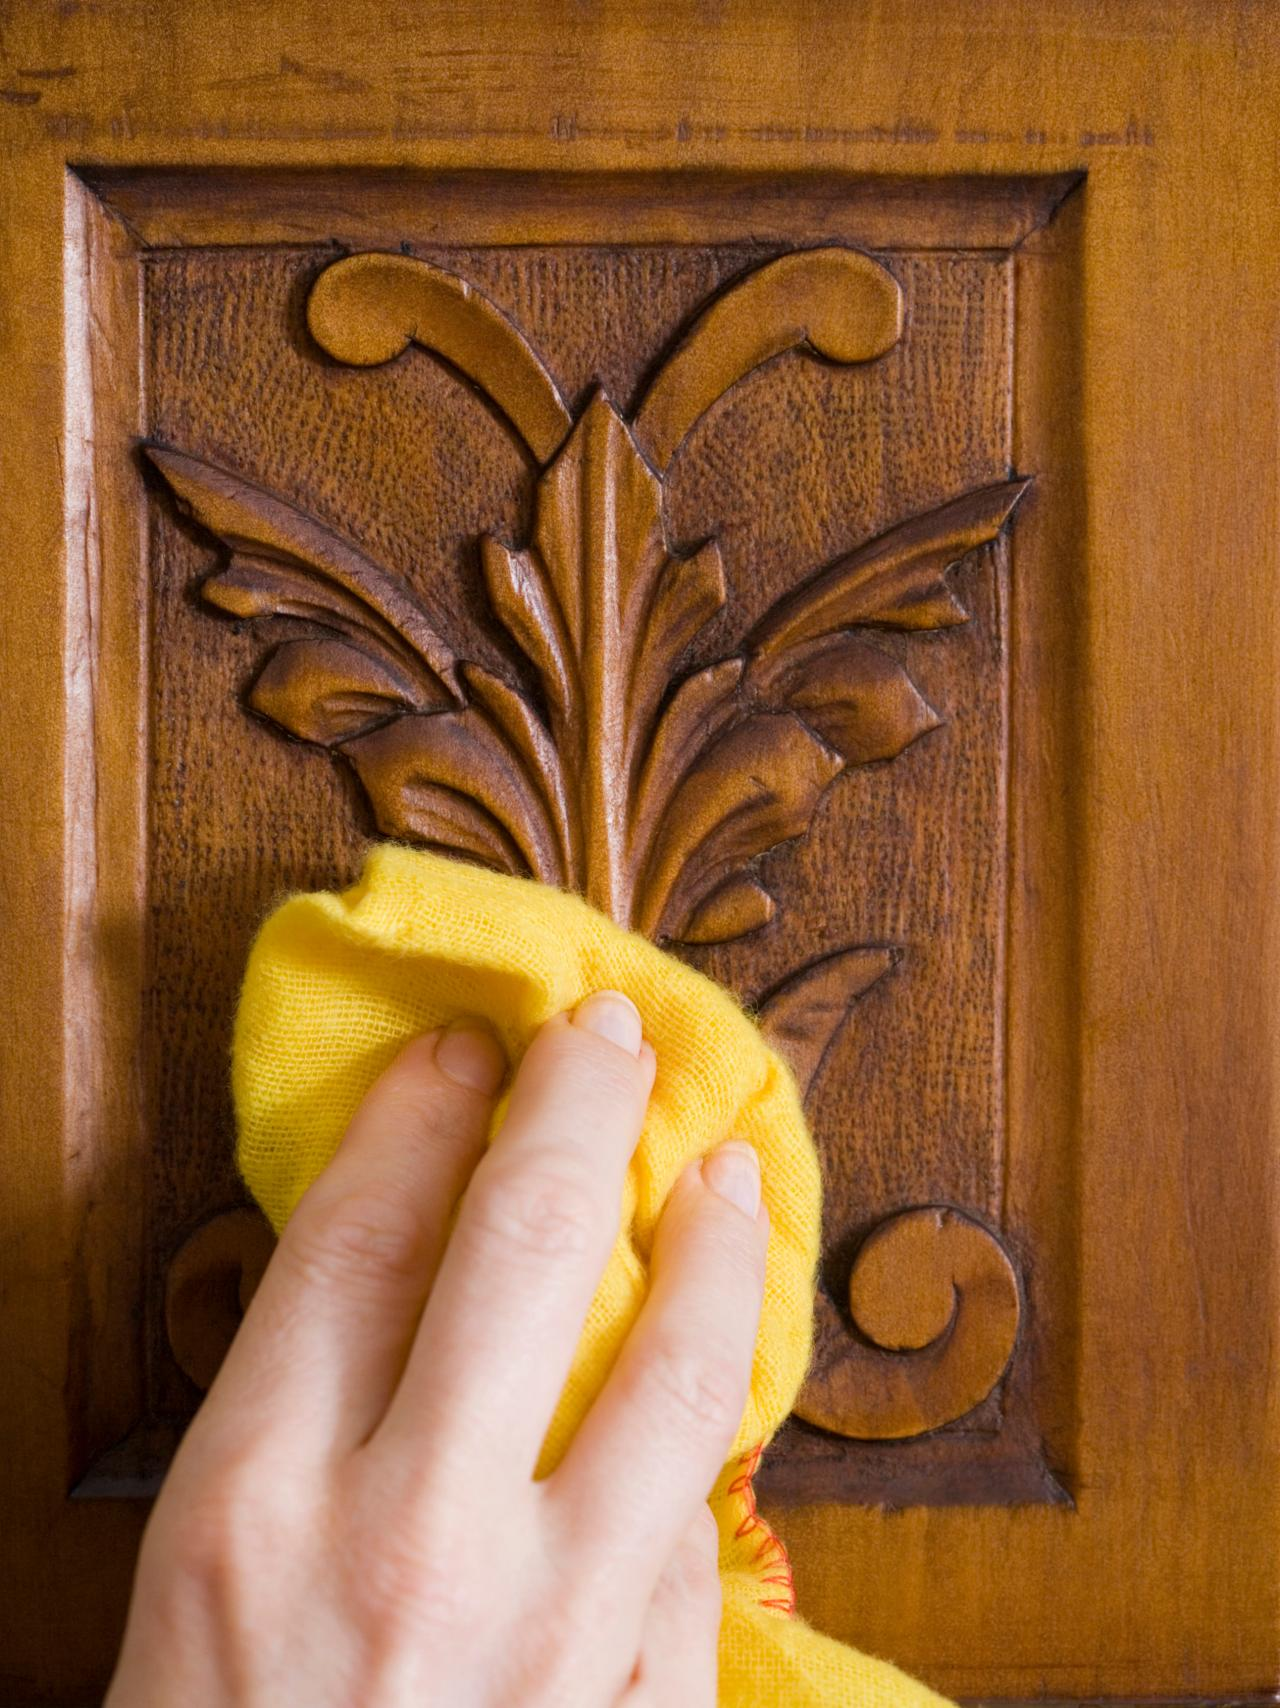 wax furniture polish